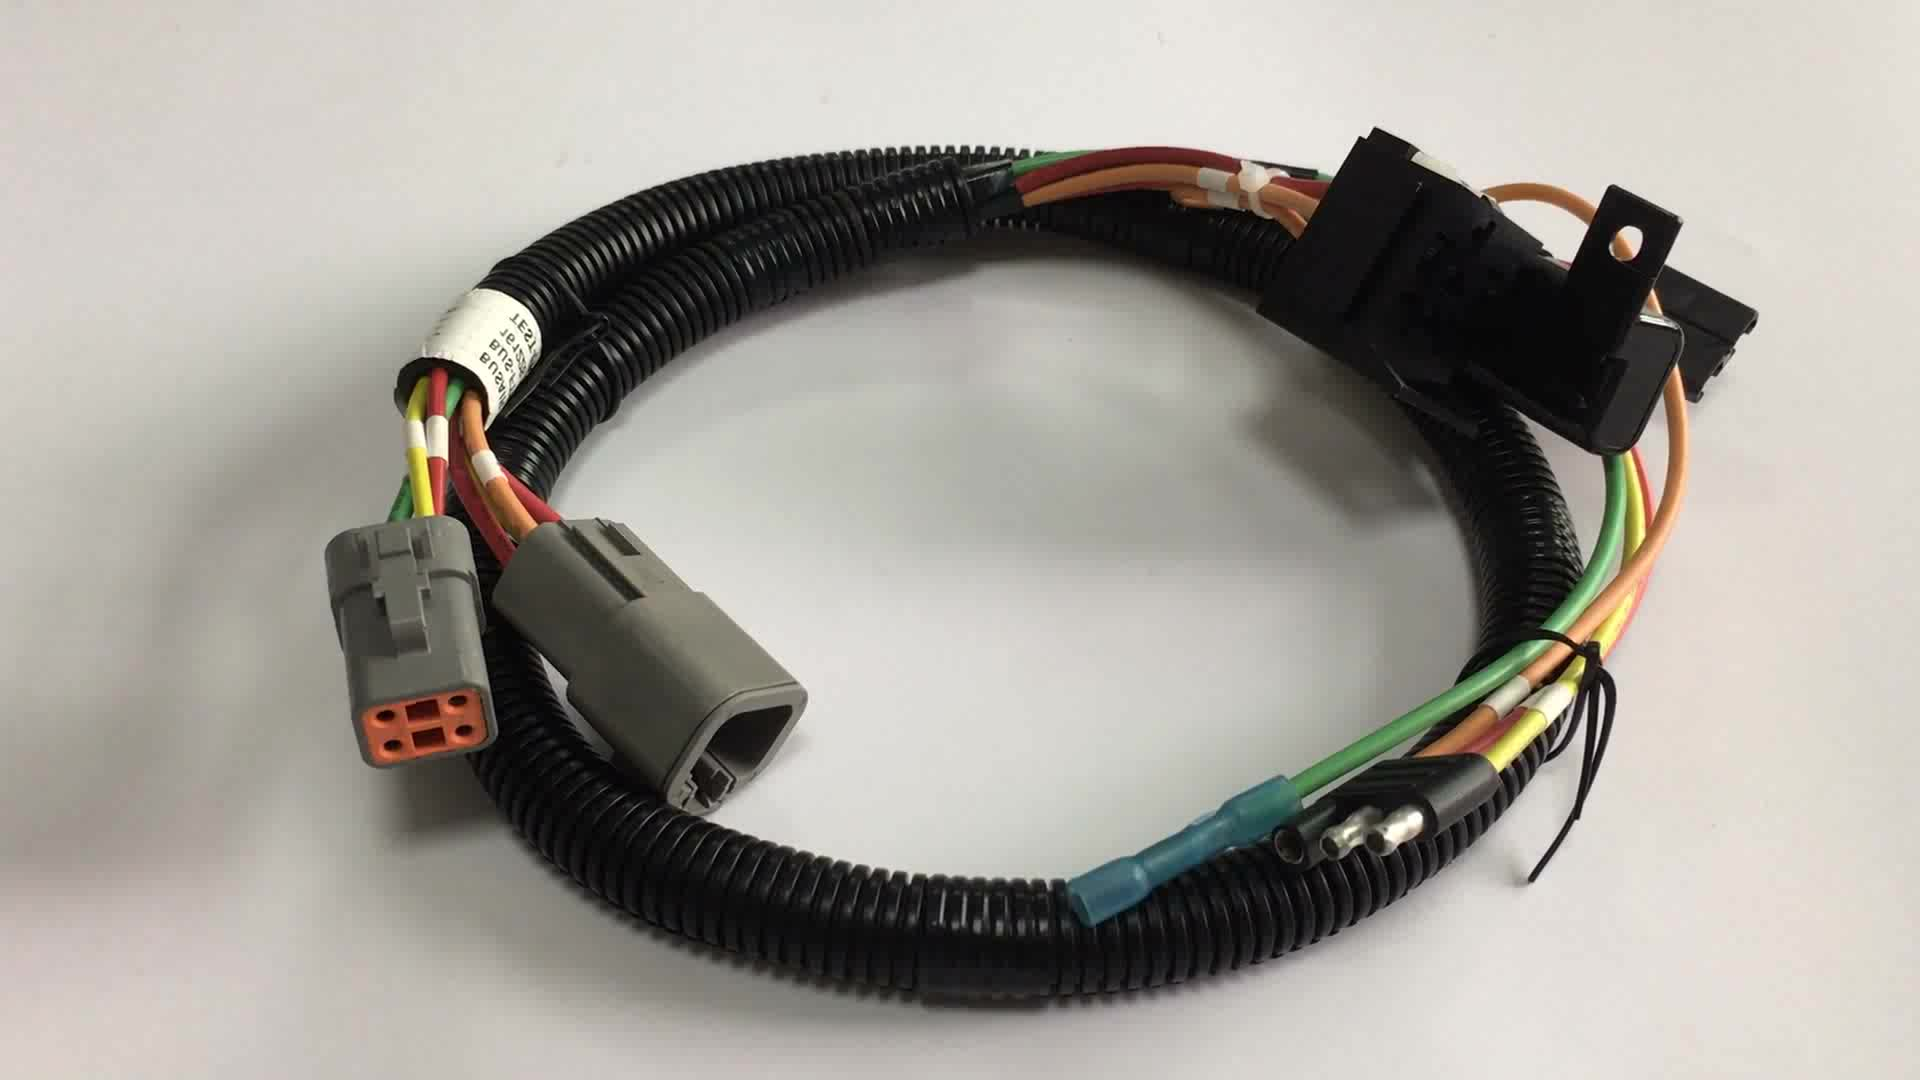 Automotive Wiring Harness Manufacturers | Wiring Liry on automotive transmission, automotive switch, automotive wheels, automotive vacuum pump, automotive electrical, automotive headlights, wire harness, automotive coil, automotive gaskets, automotive mounting brackets, automotive bumpers, car harness, automotive voltage regulator, automotive hoses, automotive computer, cable harness, automotive alternator, automotive ecu, automotive starter, automotive brakes,